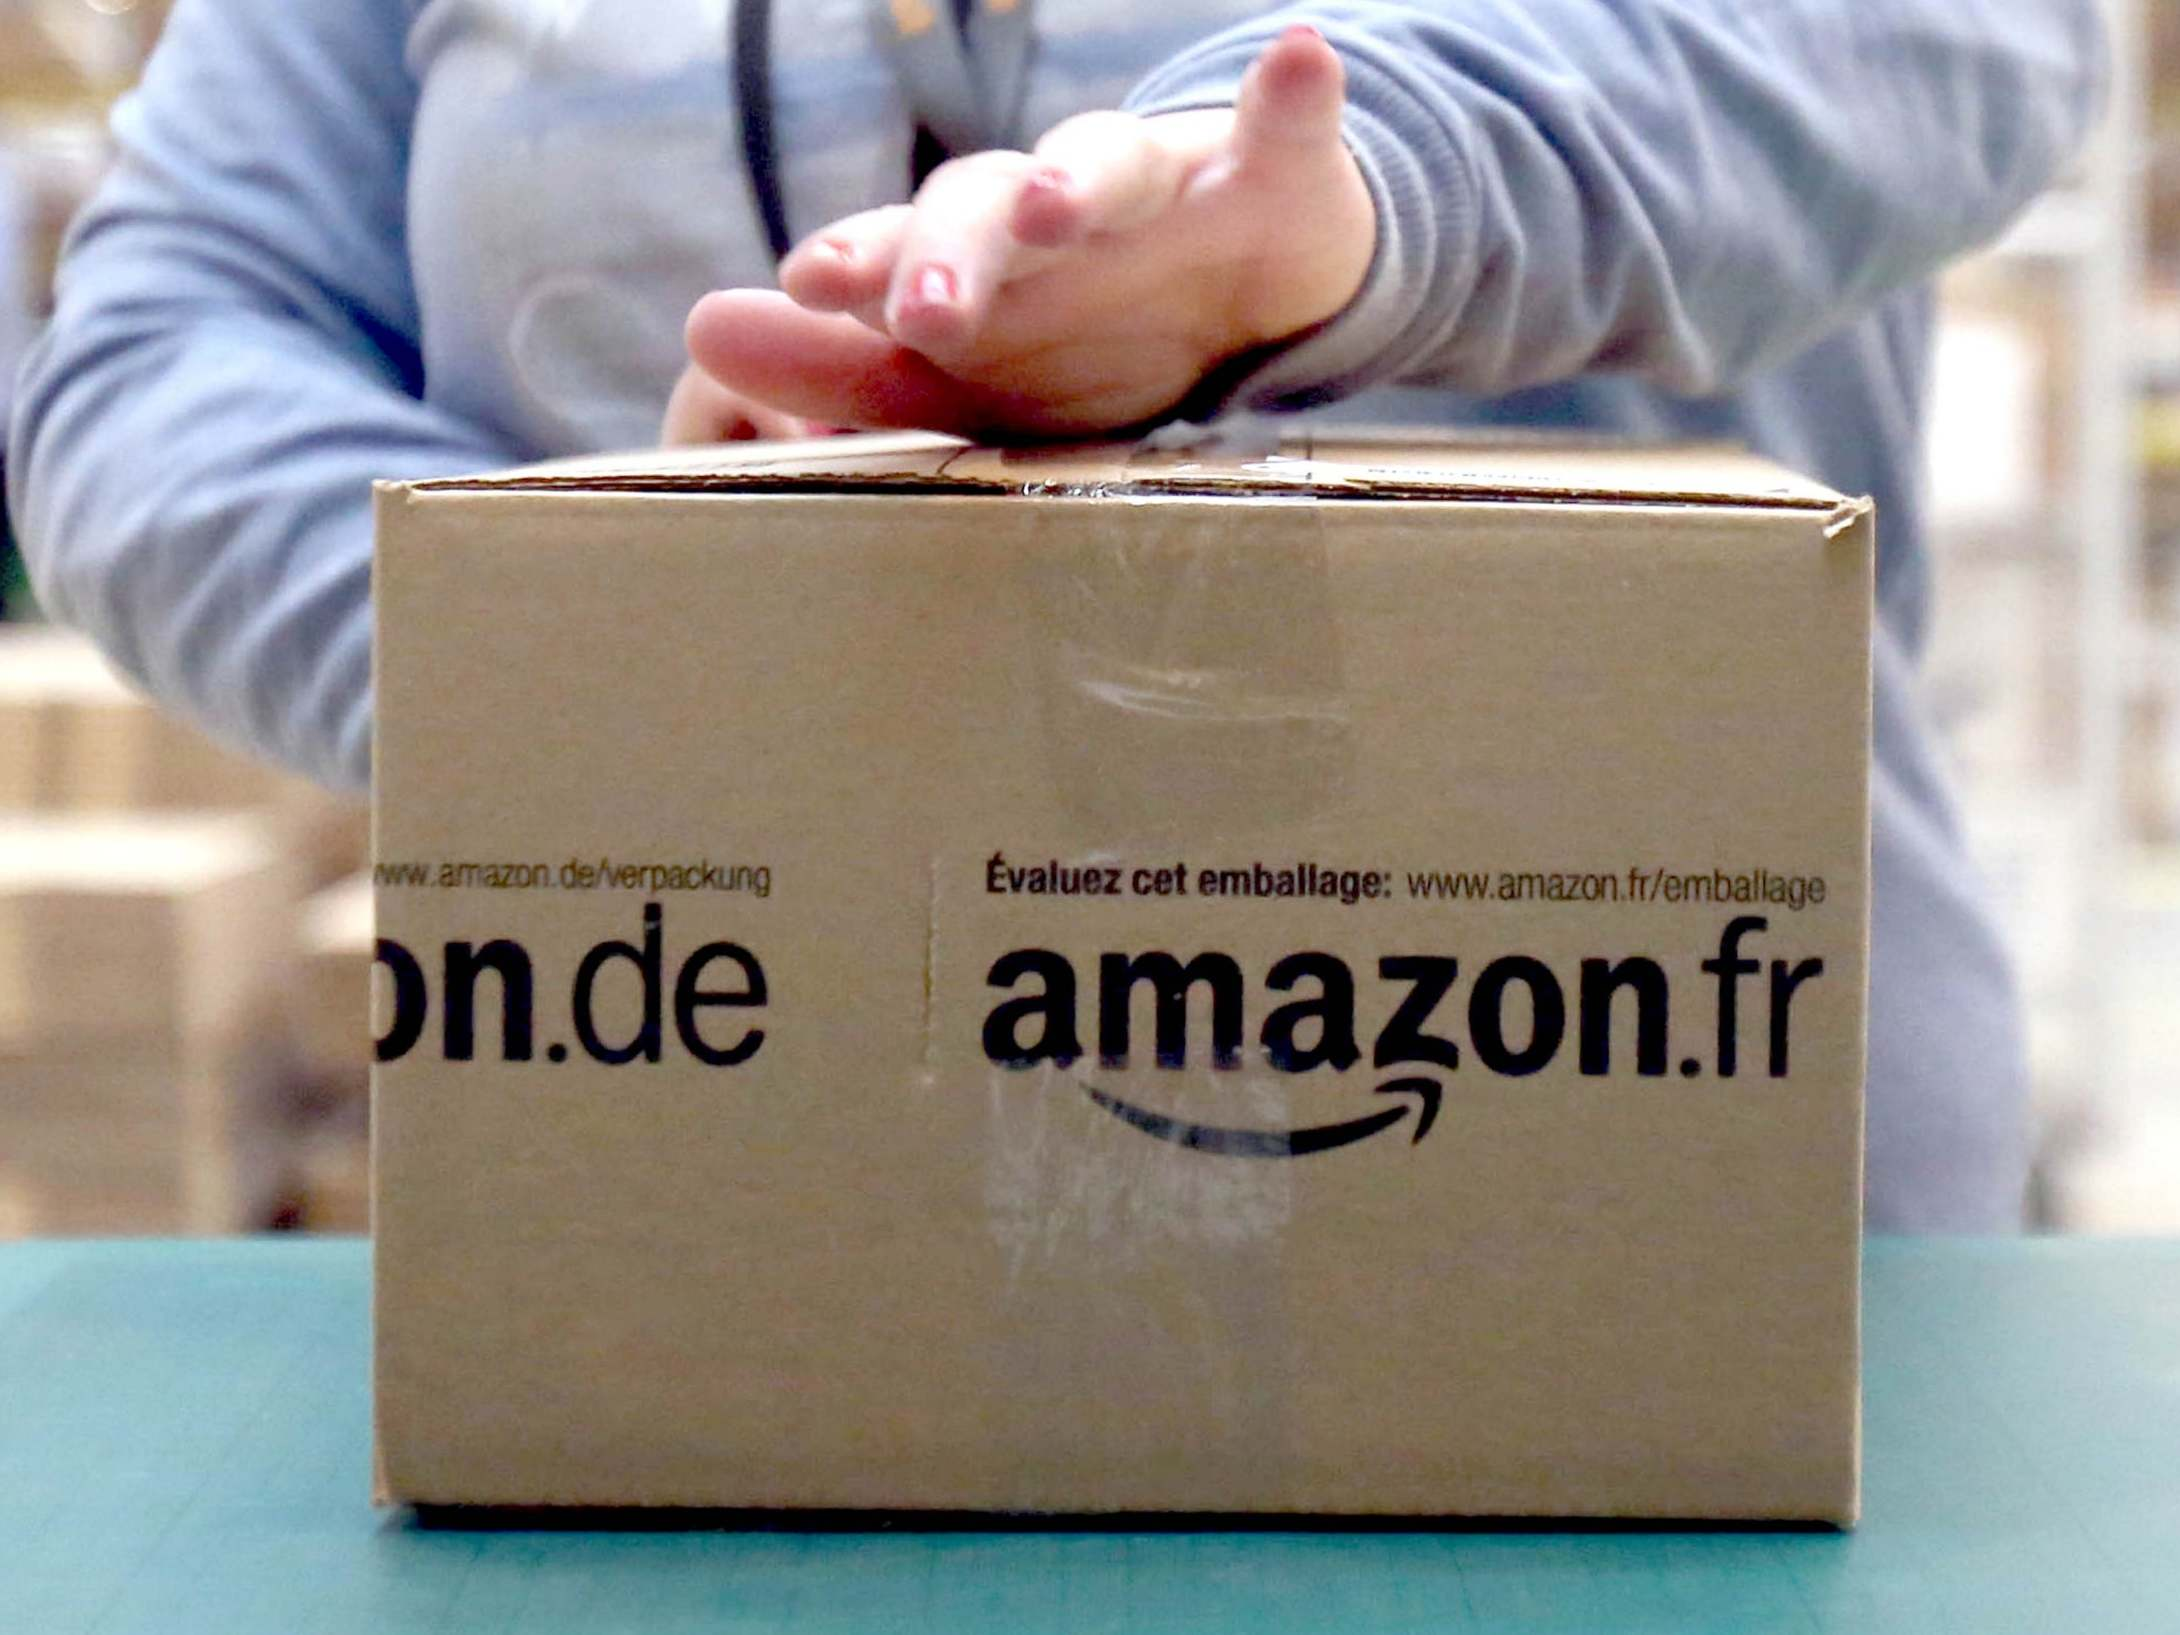 Hundreds injured at Amazon warehouses due to 'hellish' conditions, union claims